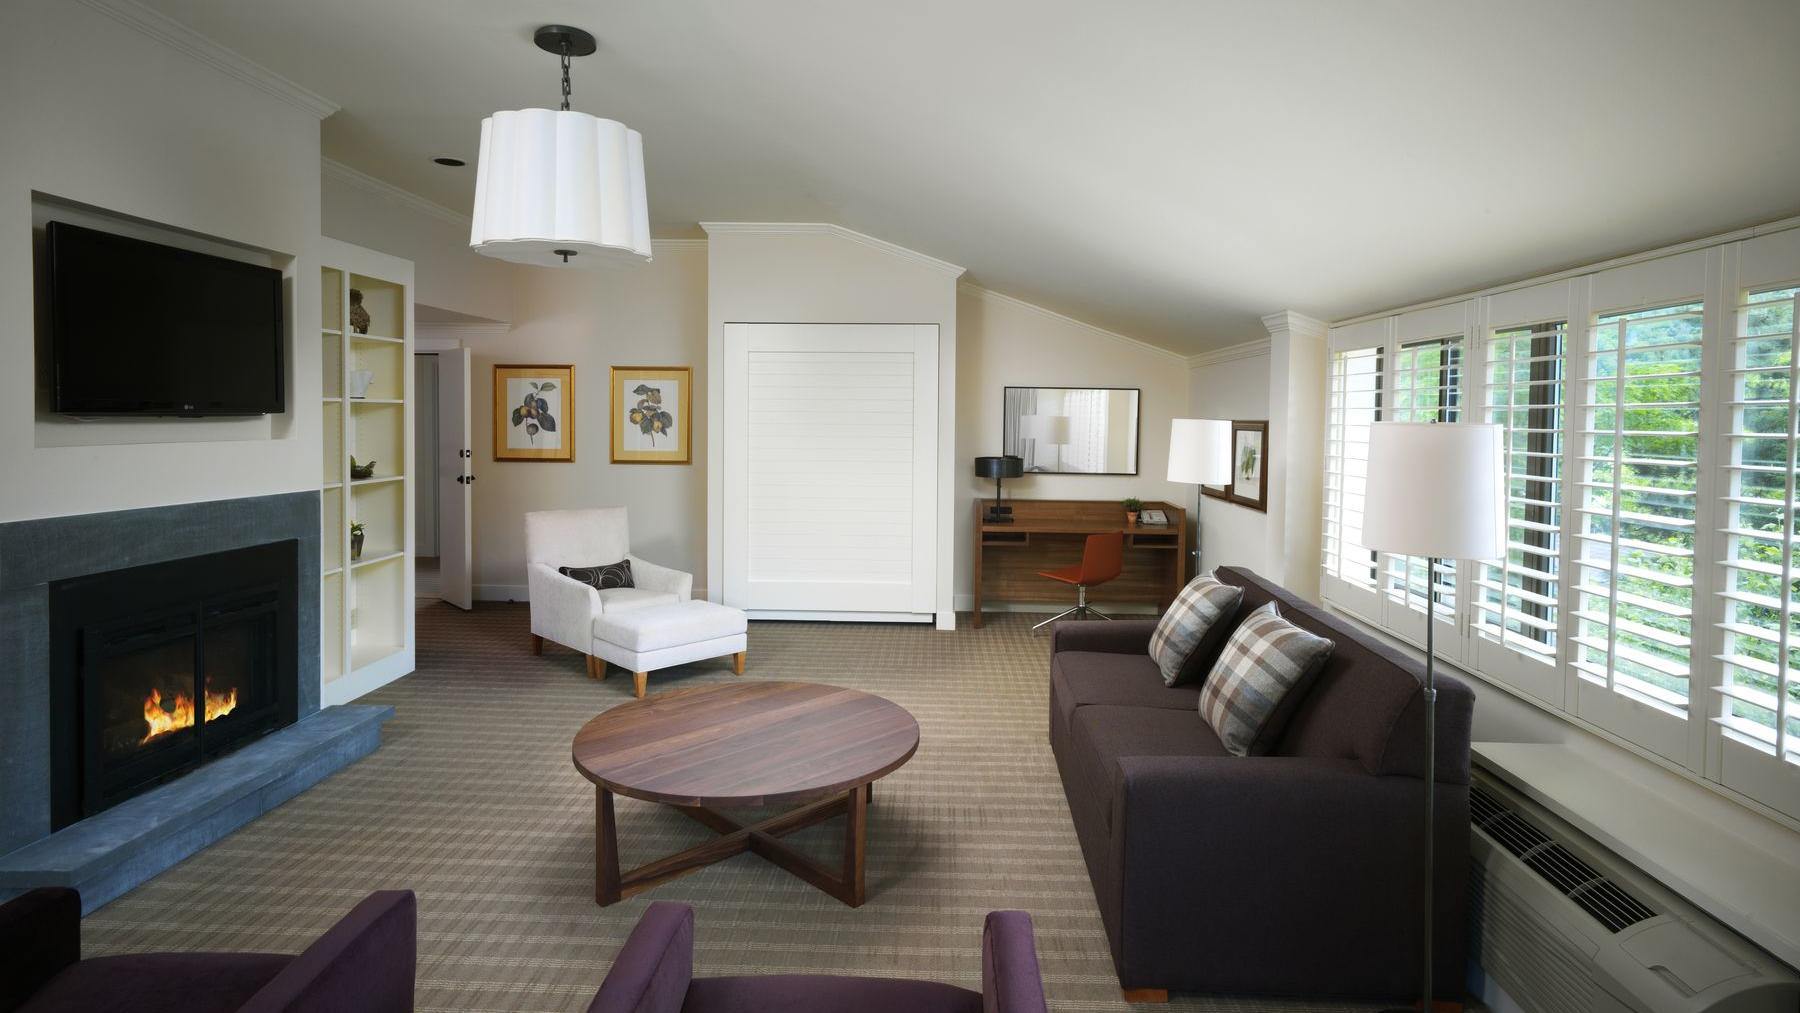 Broad living space of hotel suite.